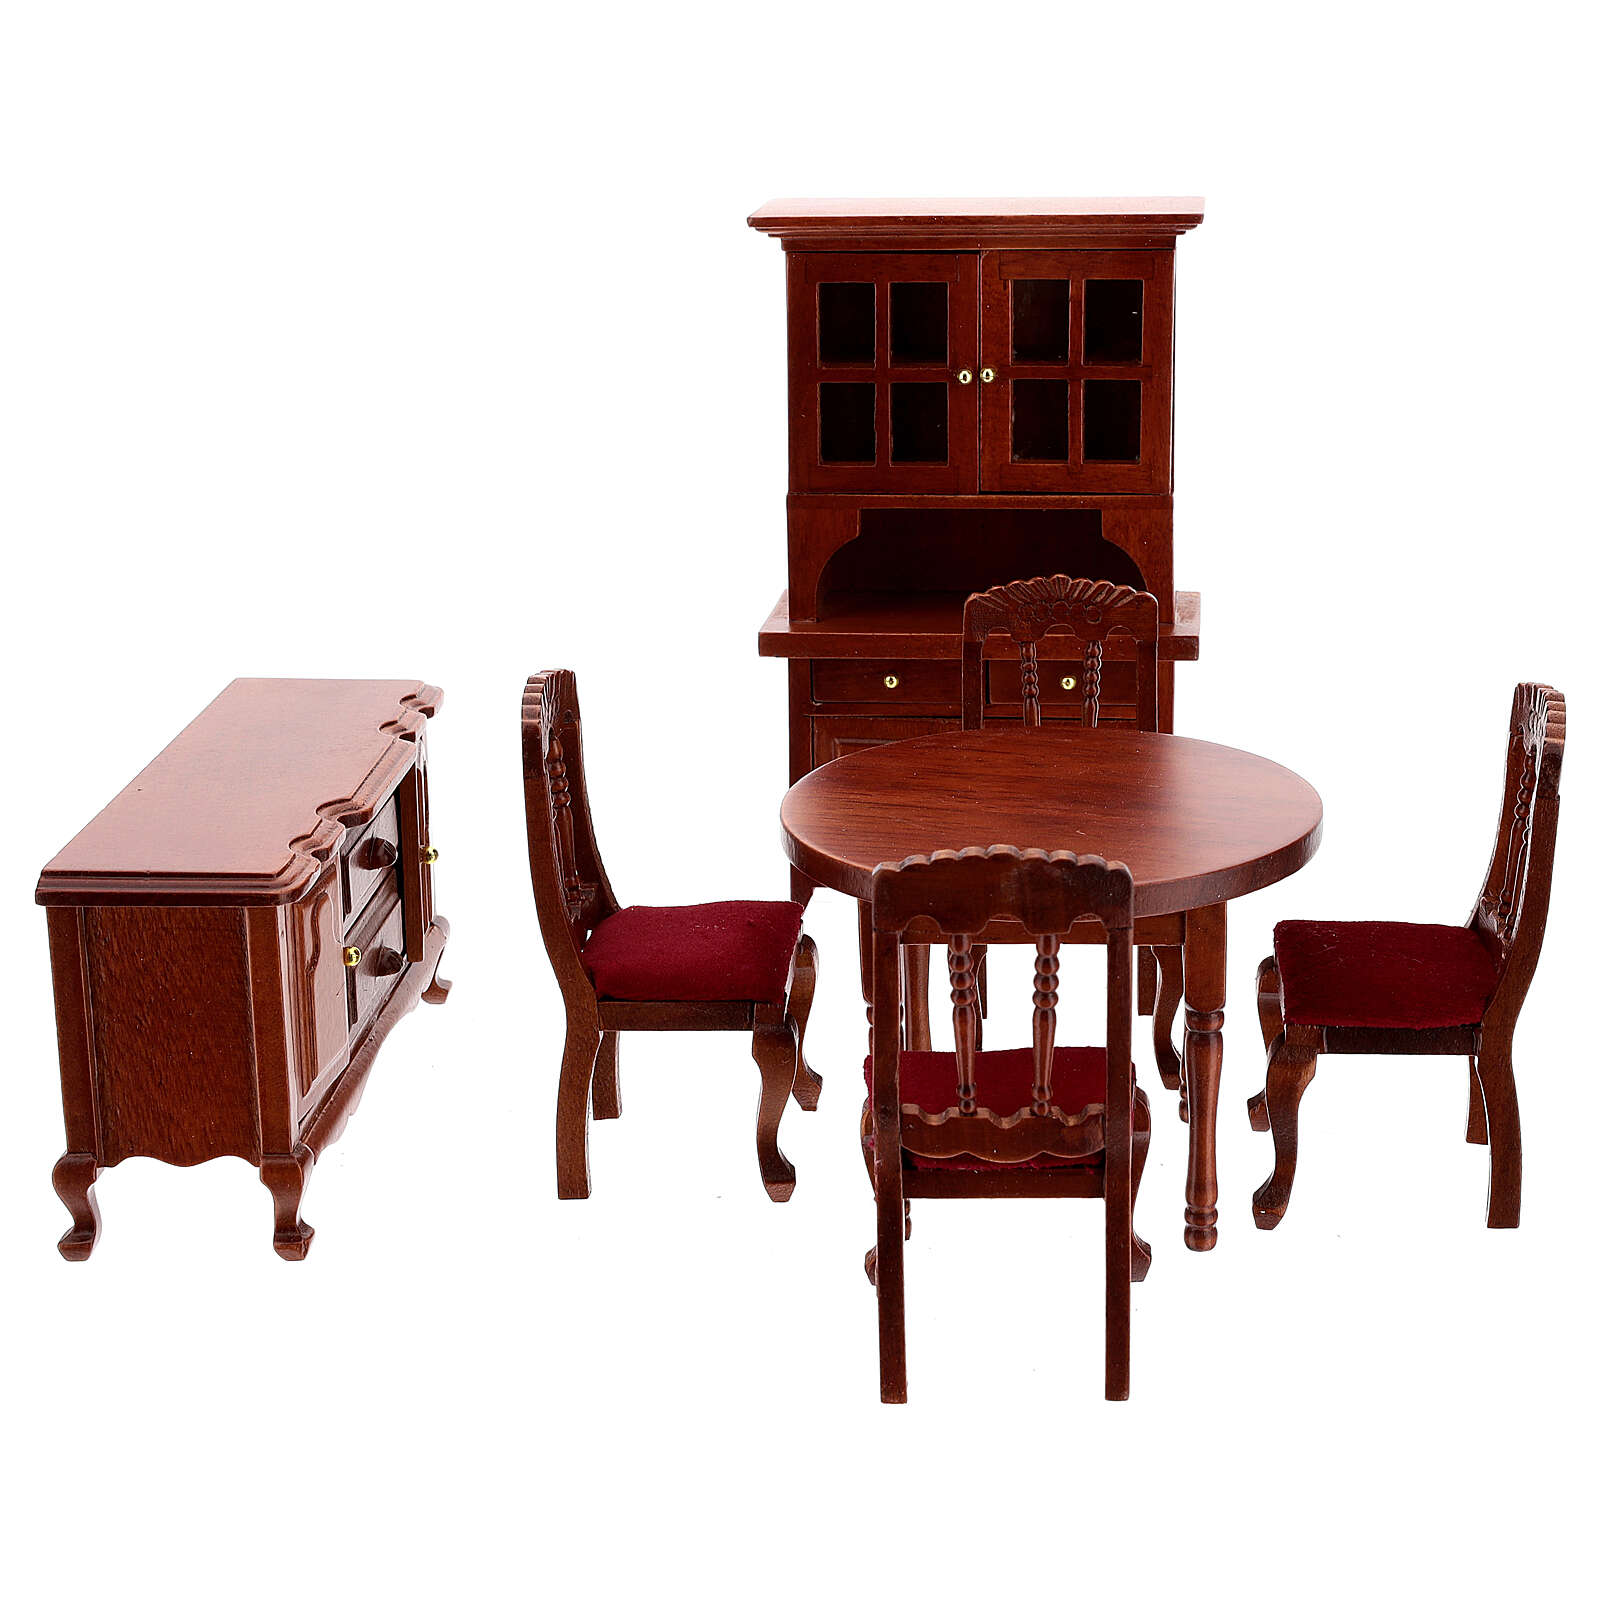 Furniture set for dining room 7 items for Nativity Scene with 12 cm figurines 4